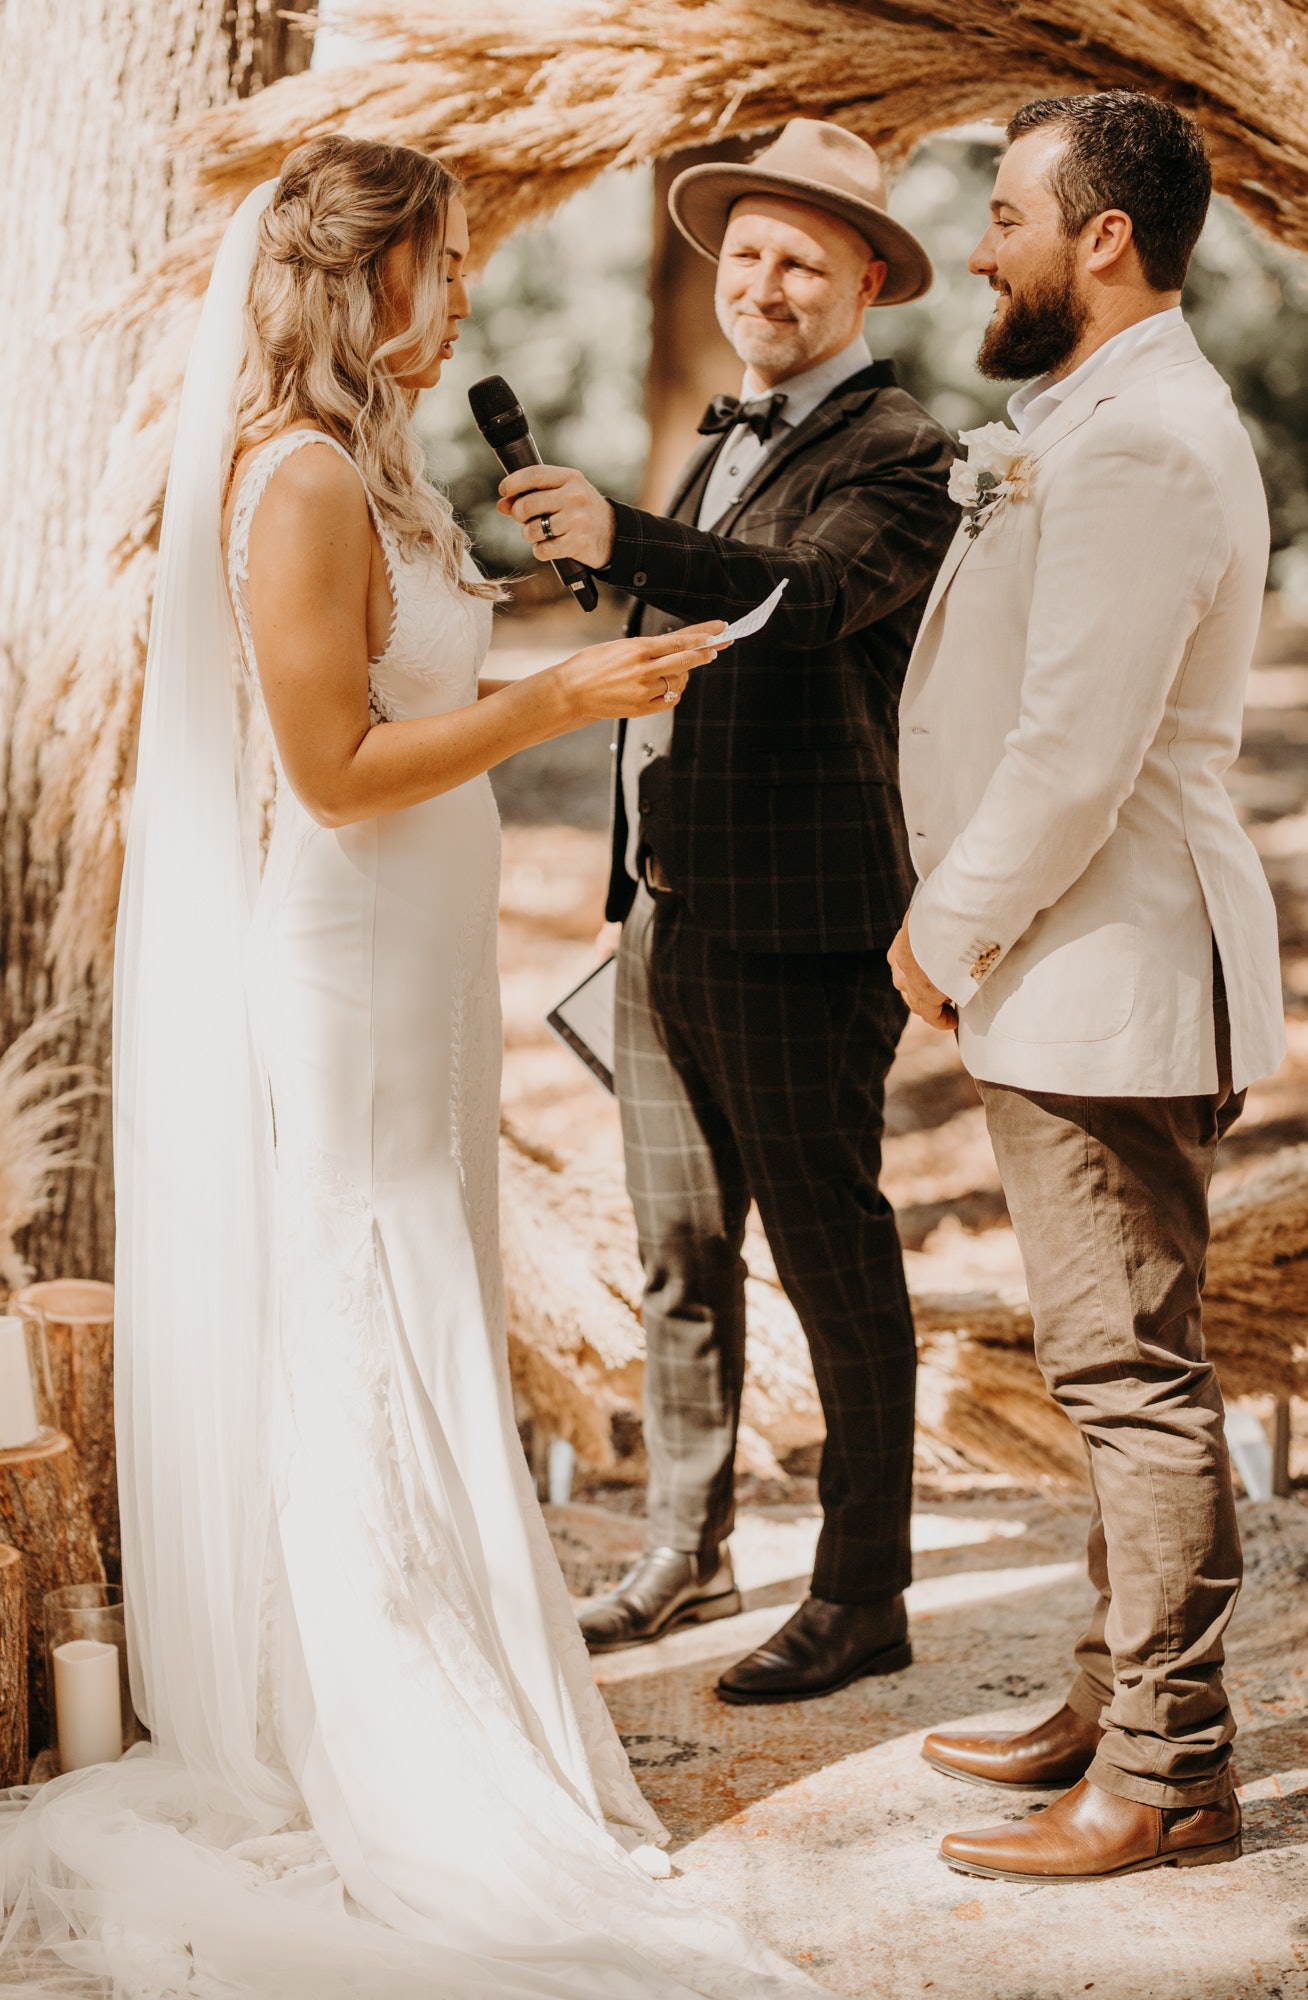 Bride and groom reading vows to one another